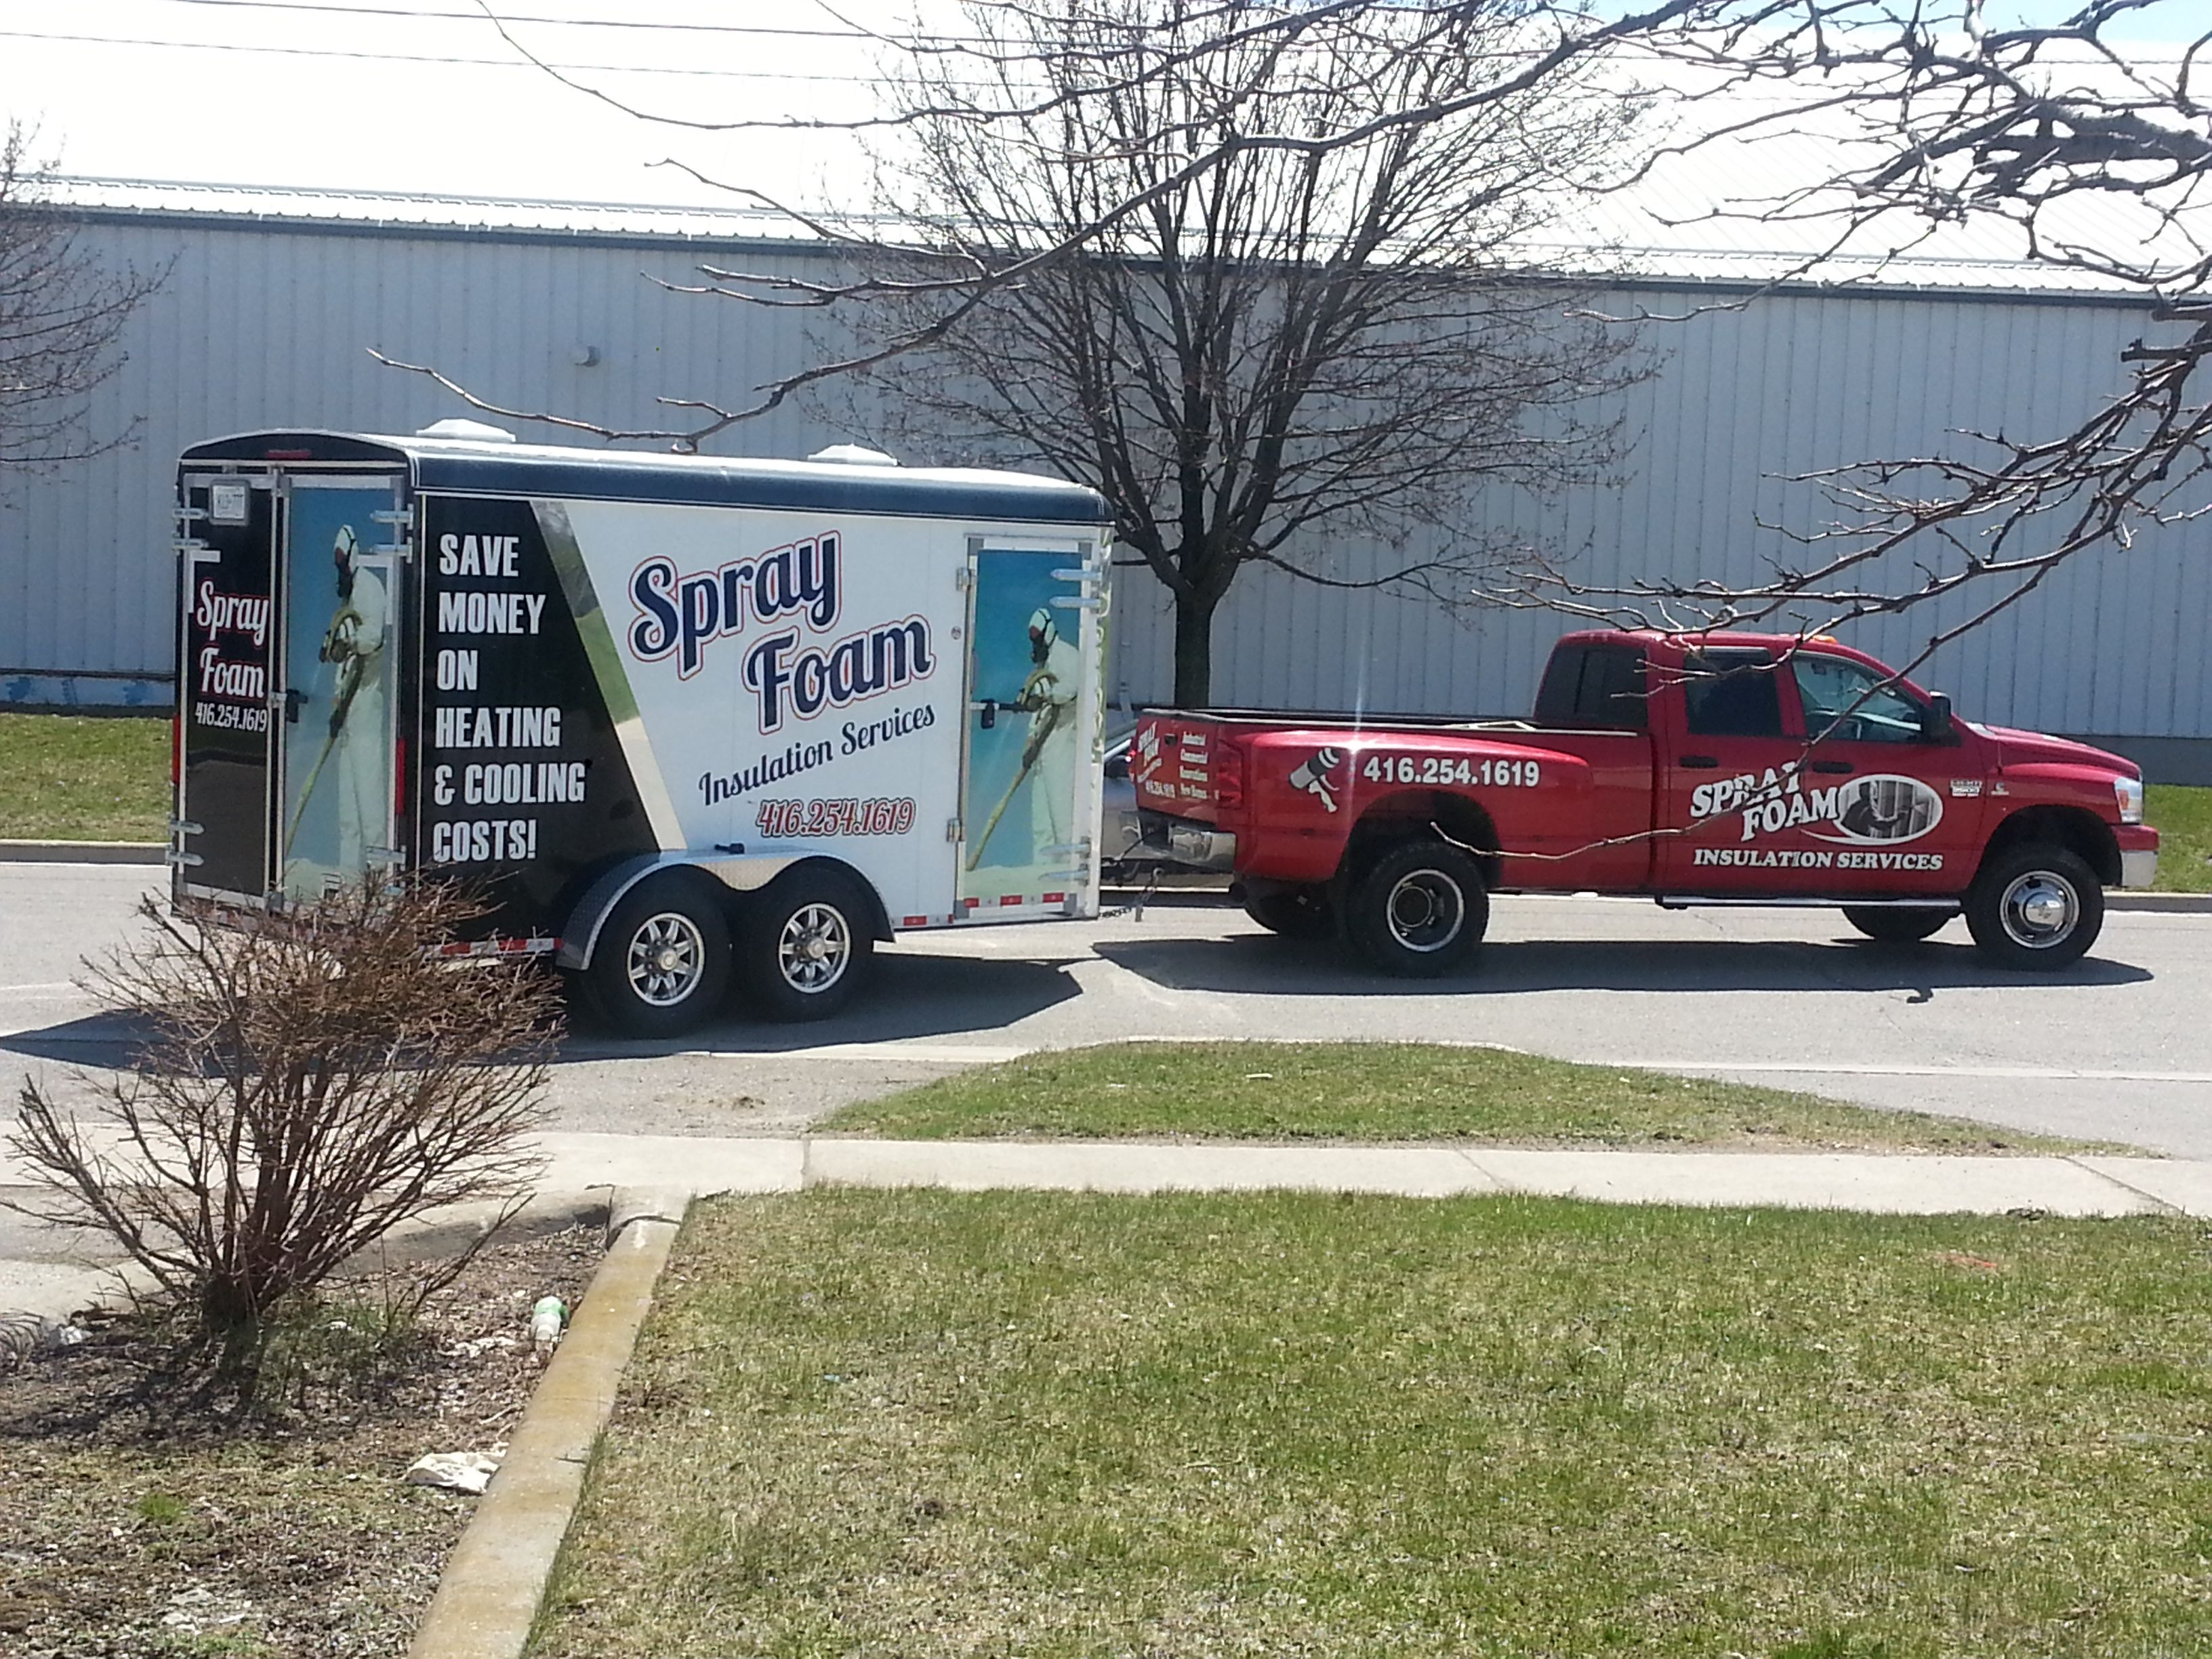 Full Trailer Wrap To Match Existing Spray Foam Wrap On Truck Consistent Messaging And Branding Uniform Look Completed By Speedpro I Car Wrap Trucks Oshawa [ 2448 x 3264 Pixel ]